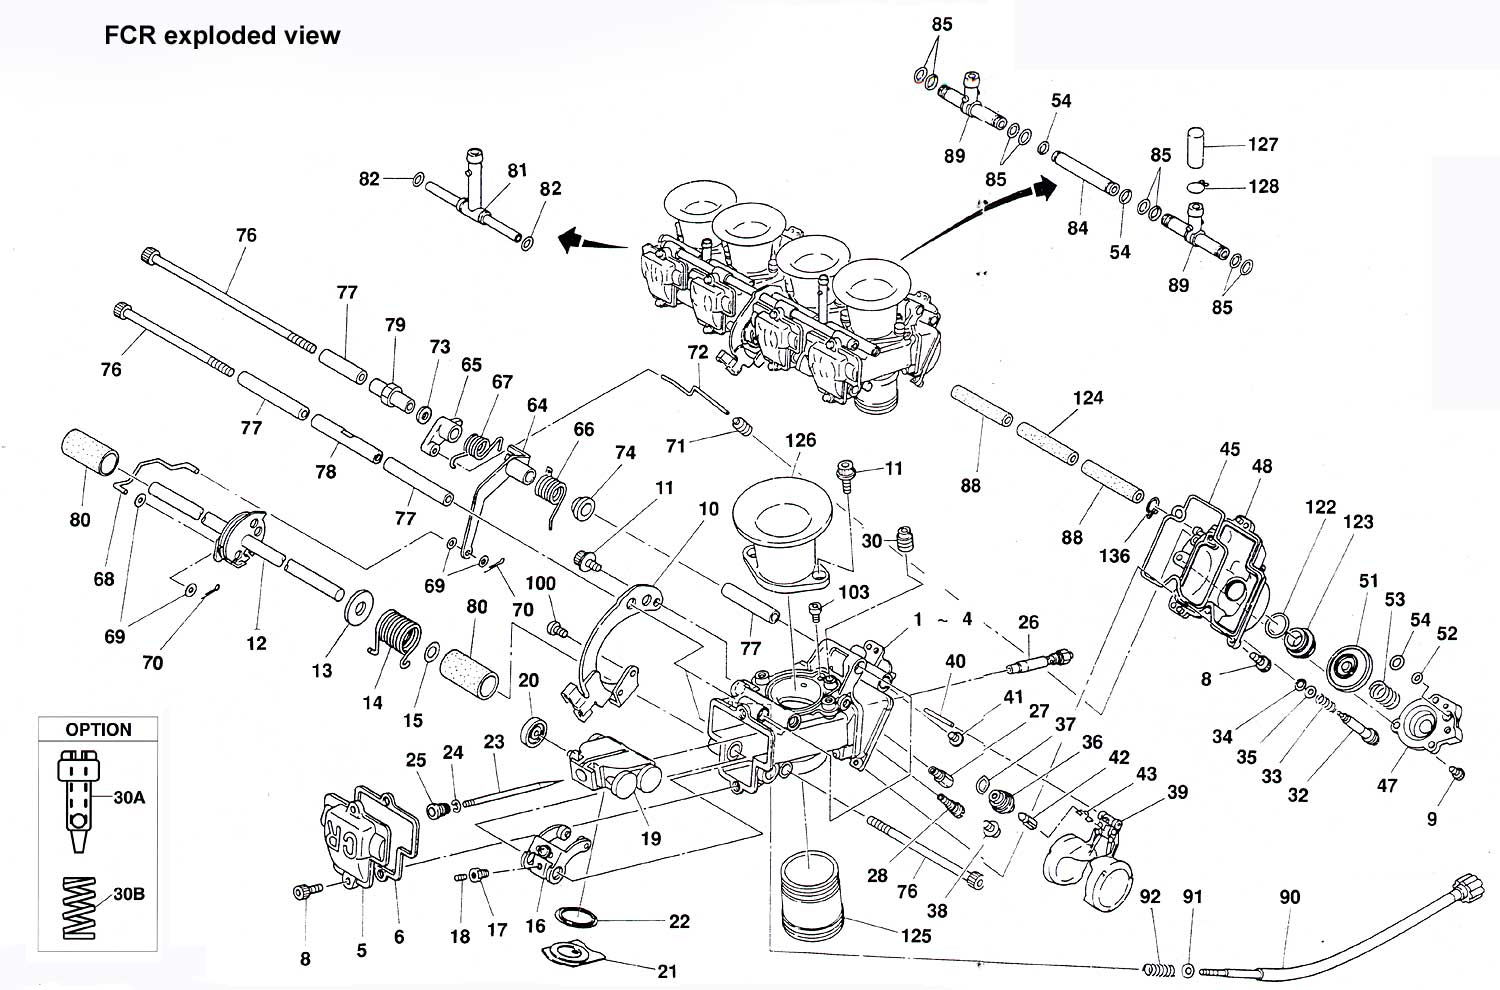 hilti dsh 700 parts diagram  diagrams  wiring diagram images